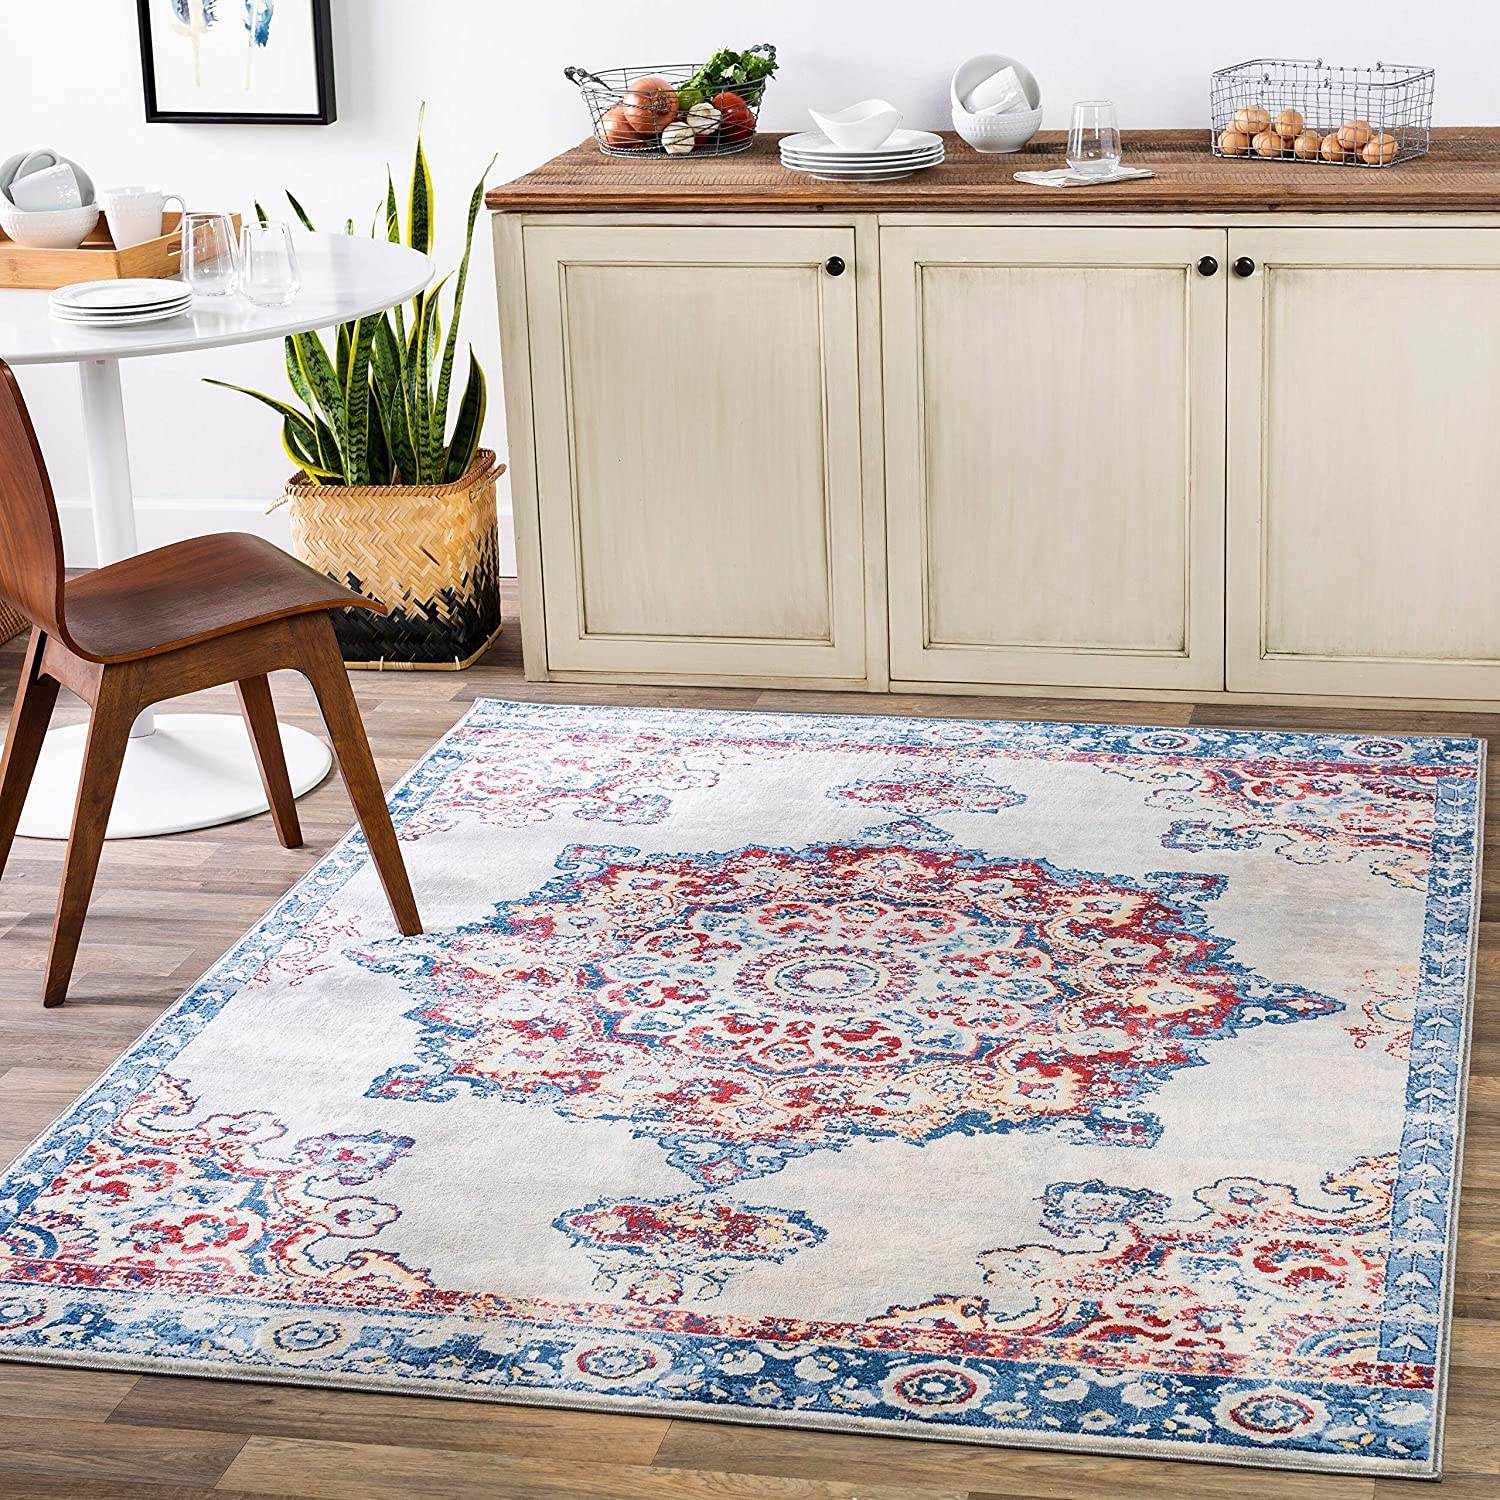 "Unknown1 Navy Persian Medallion Area Rug 5'3"" X 7'3"" Blue Cream Red Oriental Traditional Vintage Rectangle Polypropylene Synthetic Latex Free Pet"